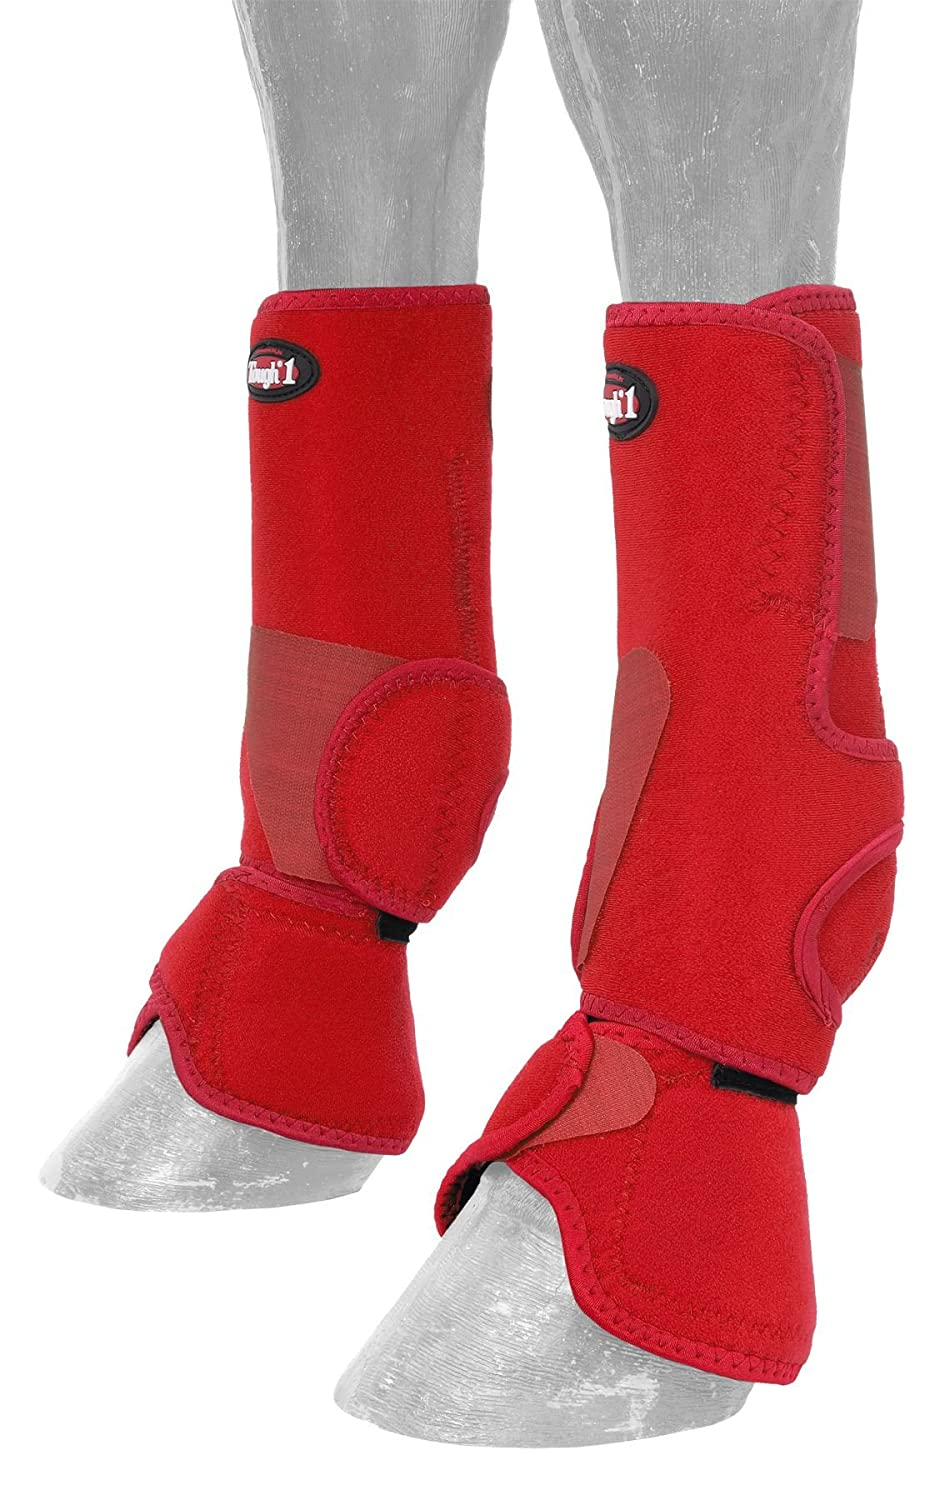 Tough 1 Performers 1st Choice Combo Boots